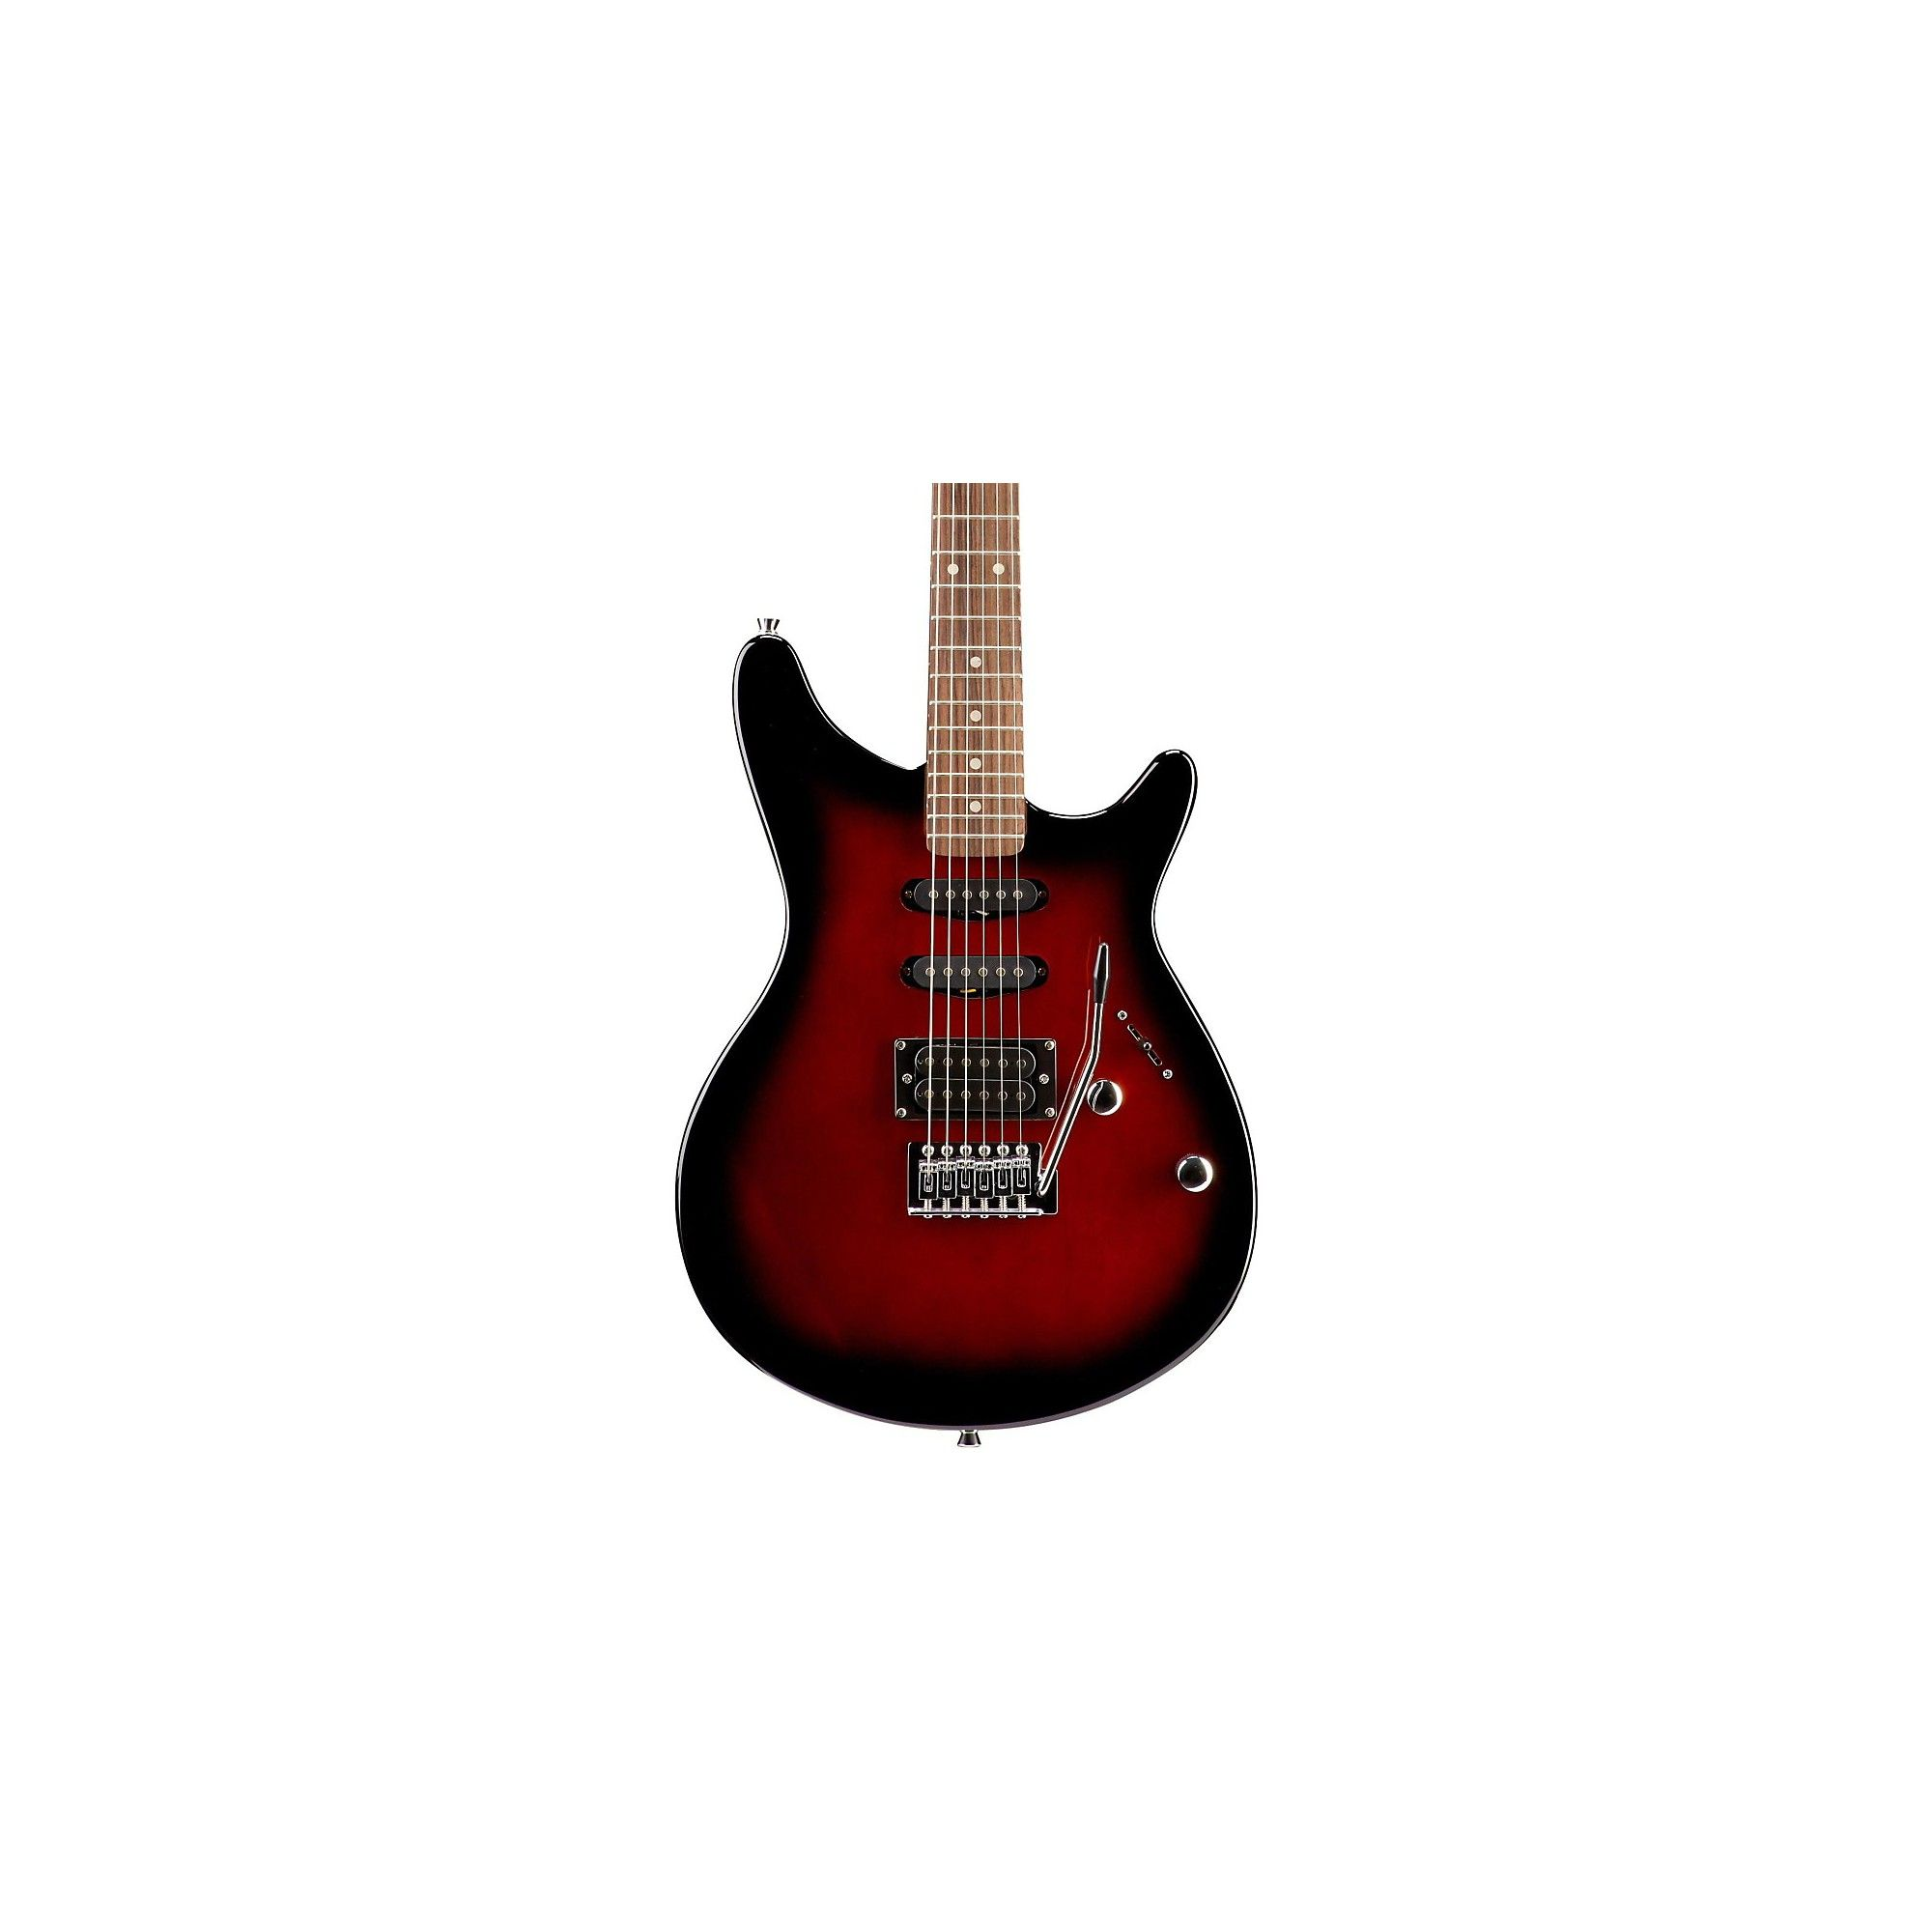 Rogue Rr100 Rocketeer Electric Guitar Red Burst Products Guitar